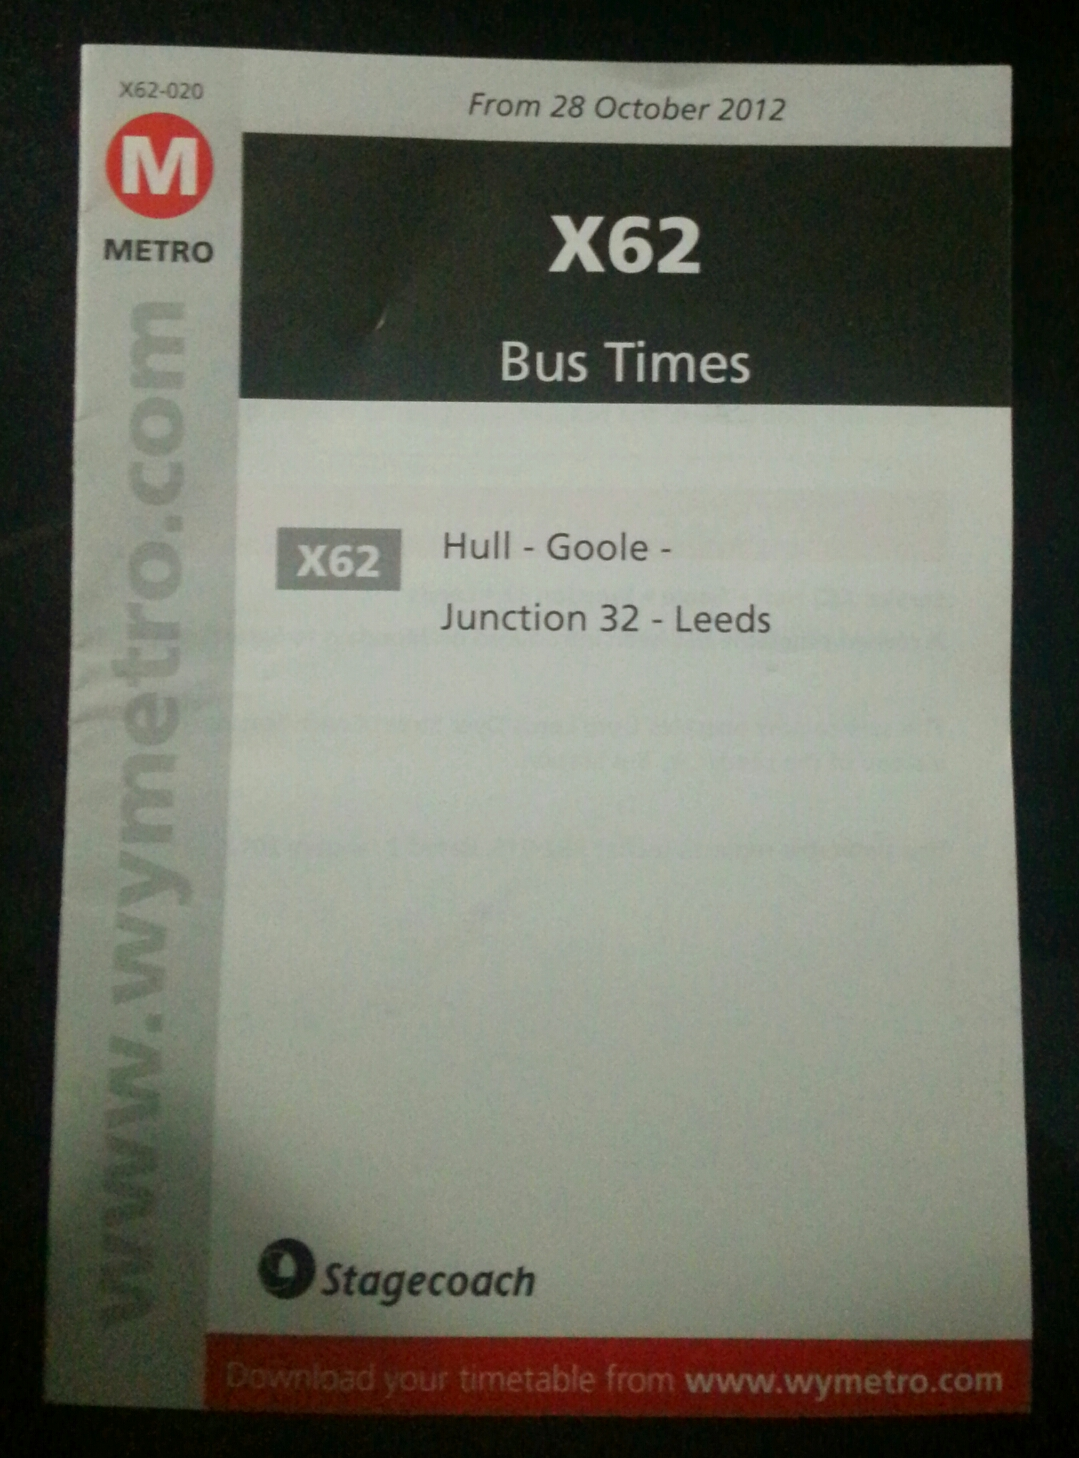 Download the Stagecoach X62 Leeds Xscape Castleford Goole Brough North Ferriby Hull timetable bus times